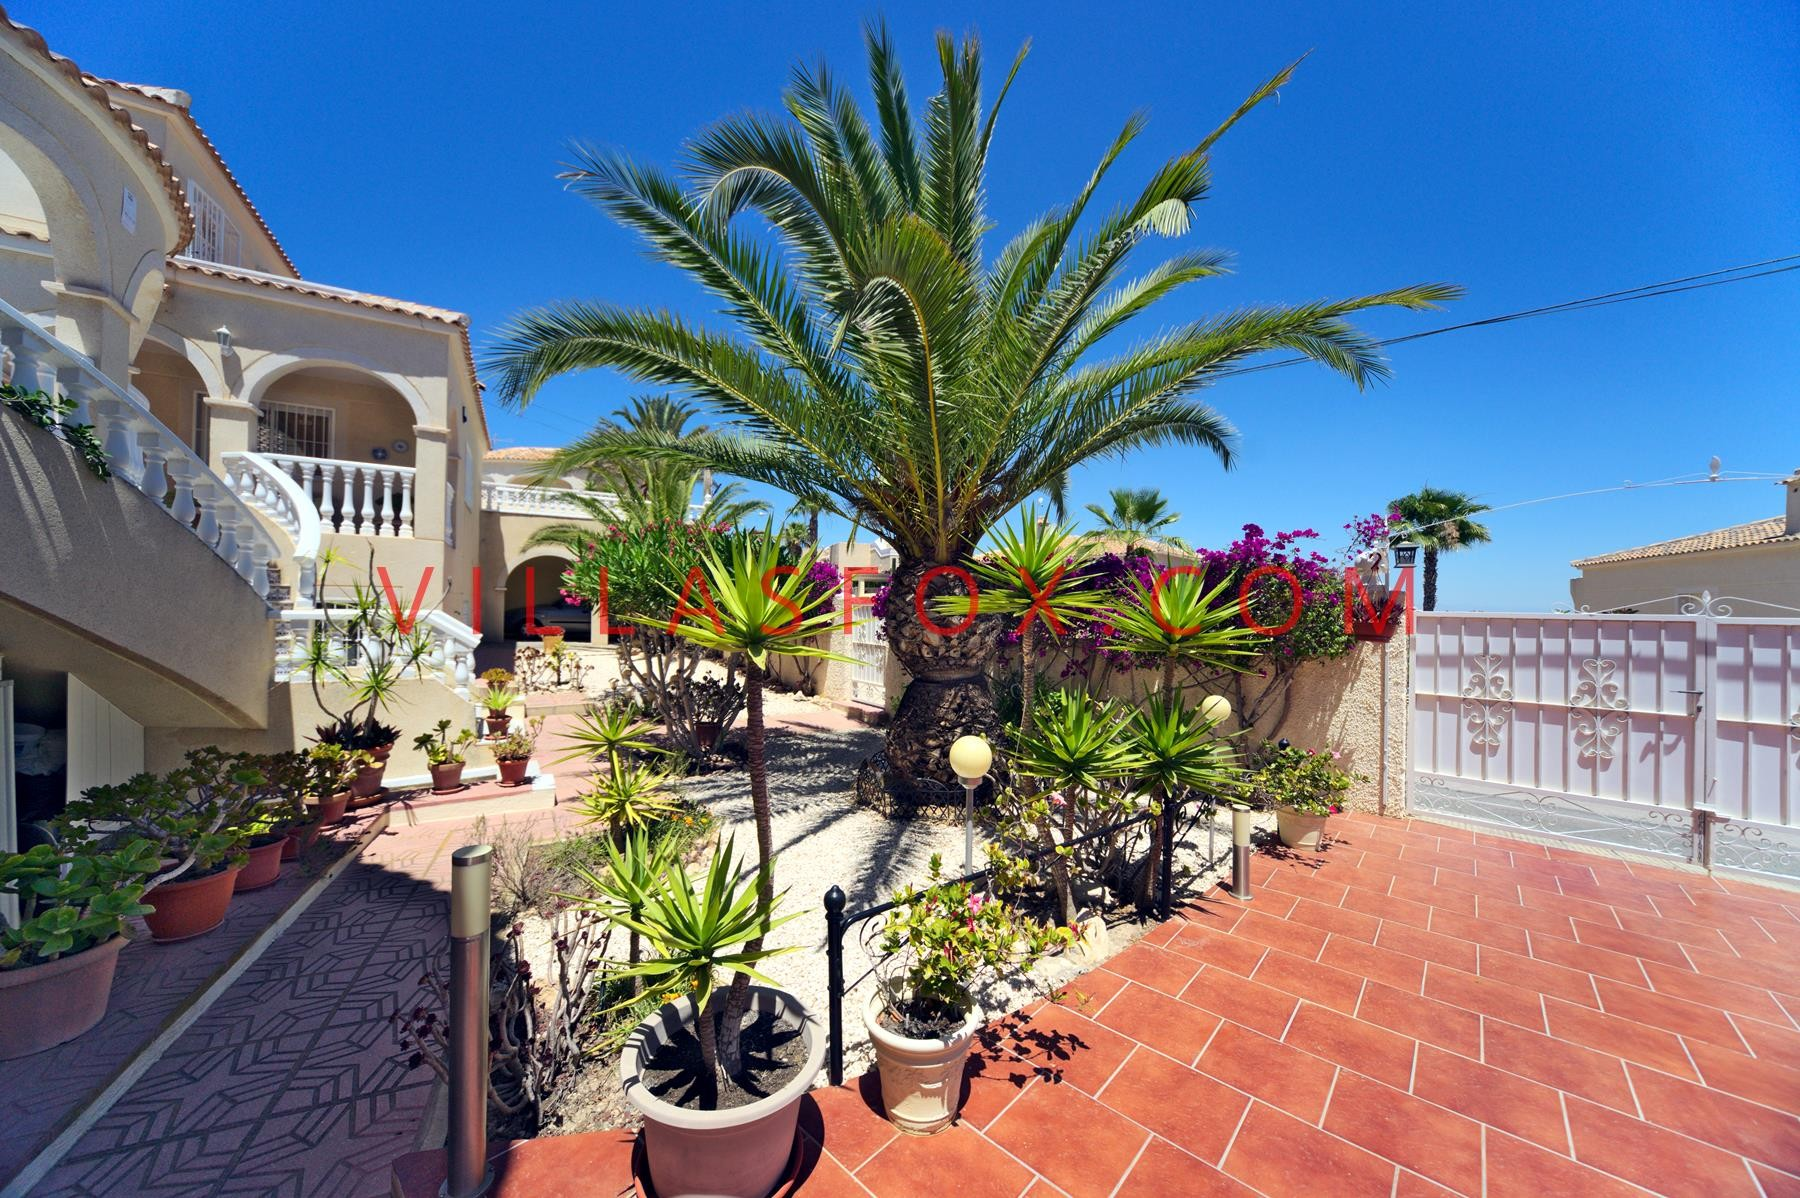 San Miguel de Salinas 4-bedroom villa Las Comunicaciones with great views, superb condition!